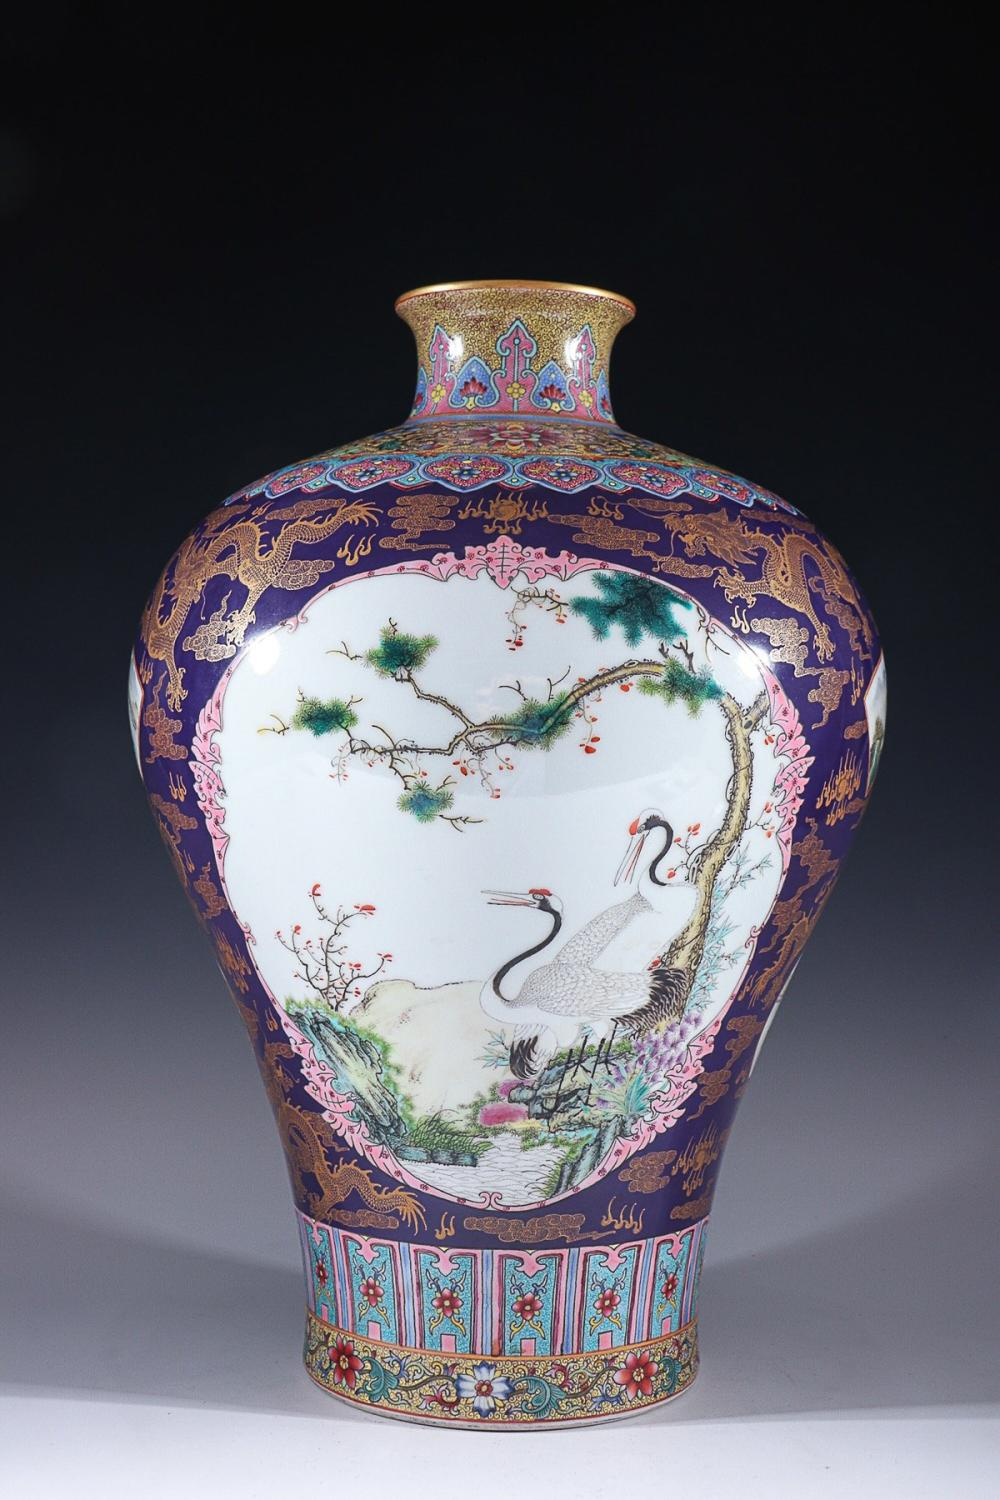 MERCES Asian Works of Art, Oct. 25th(No Reserve)